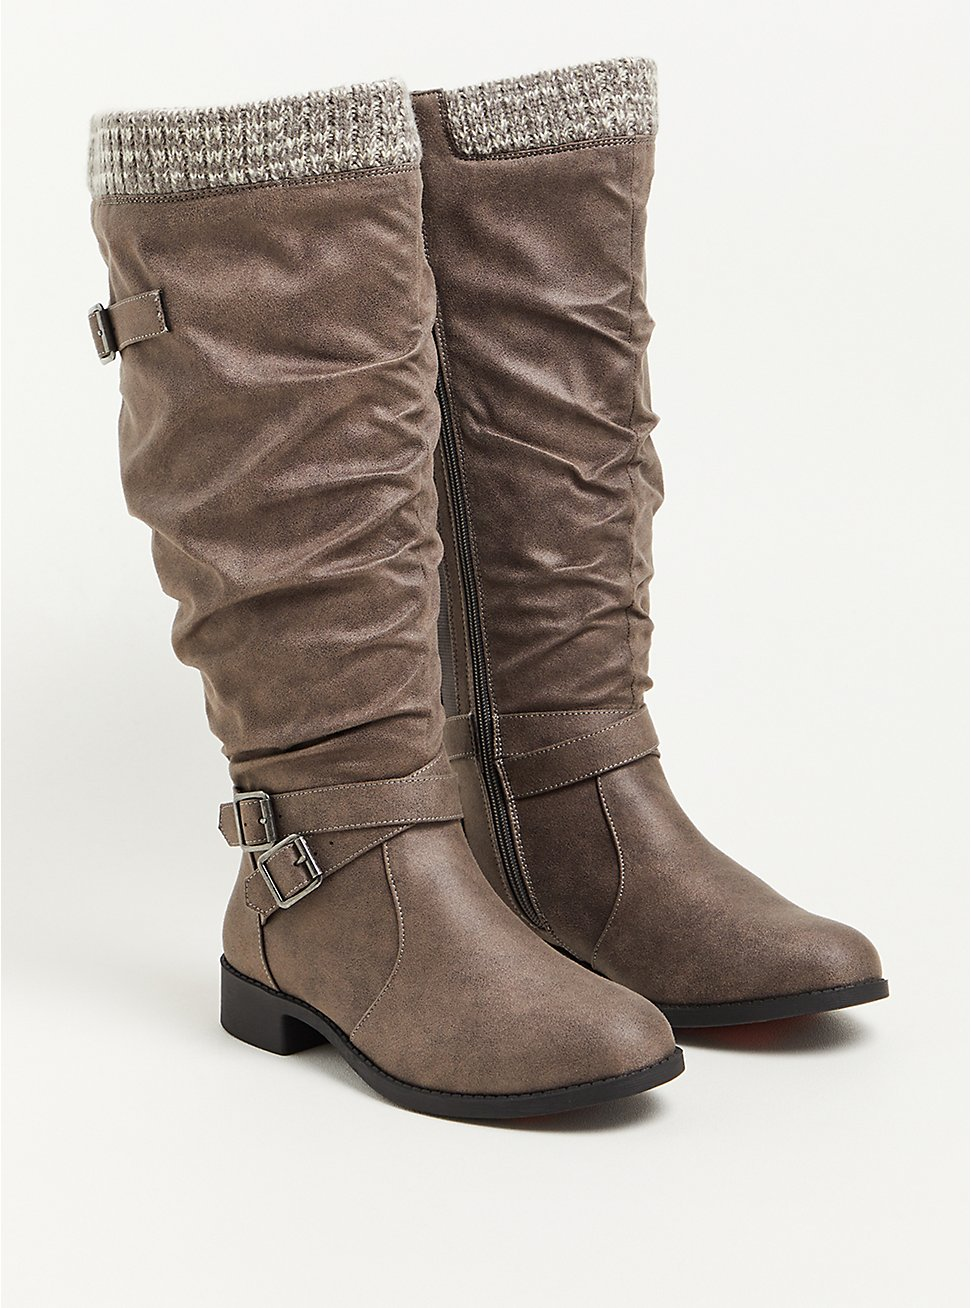 Plus Size Sweater Knee Boot - Faux Leather Grey (WW), GREY, hi-res